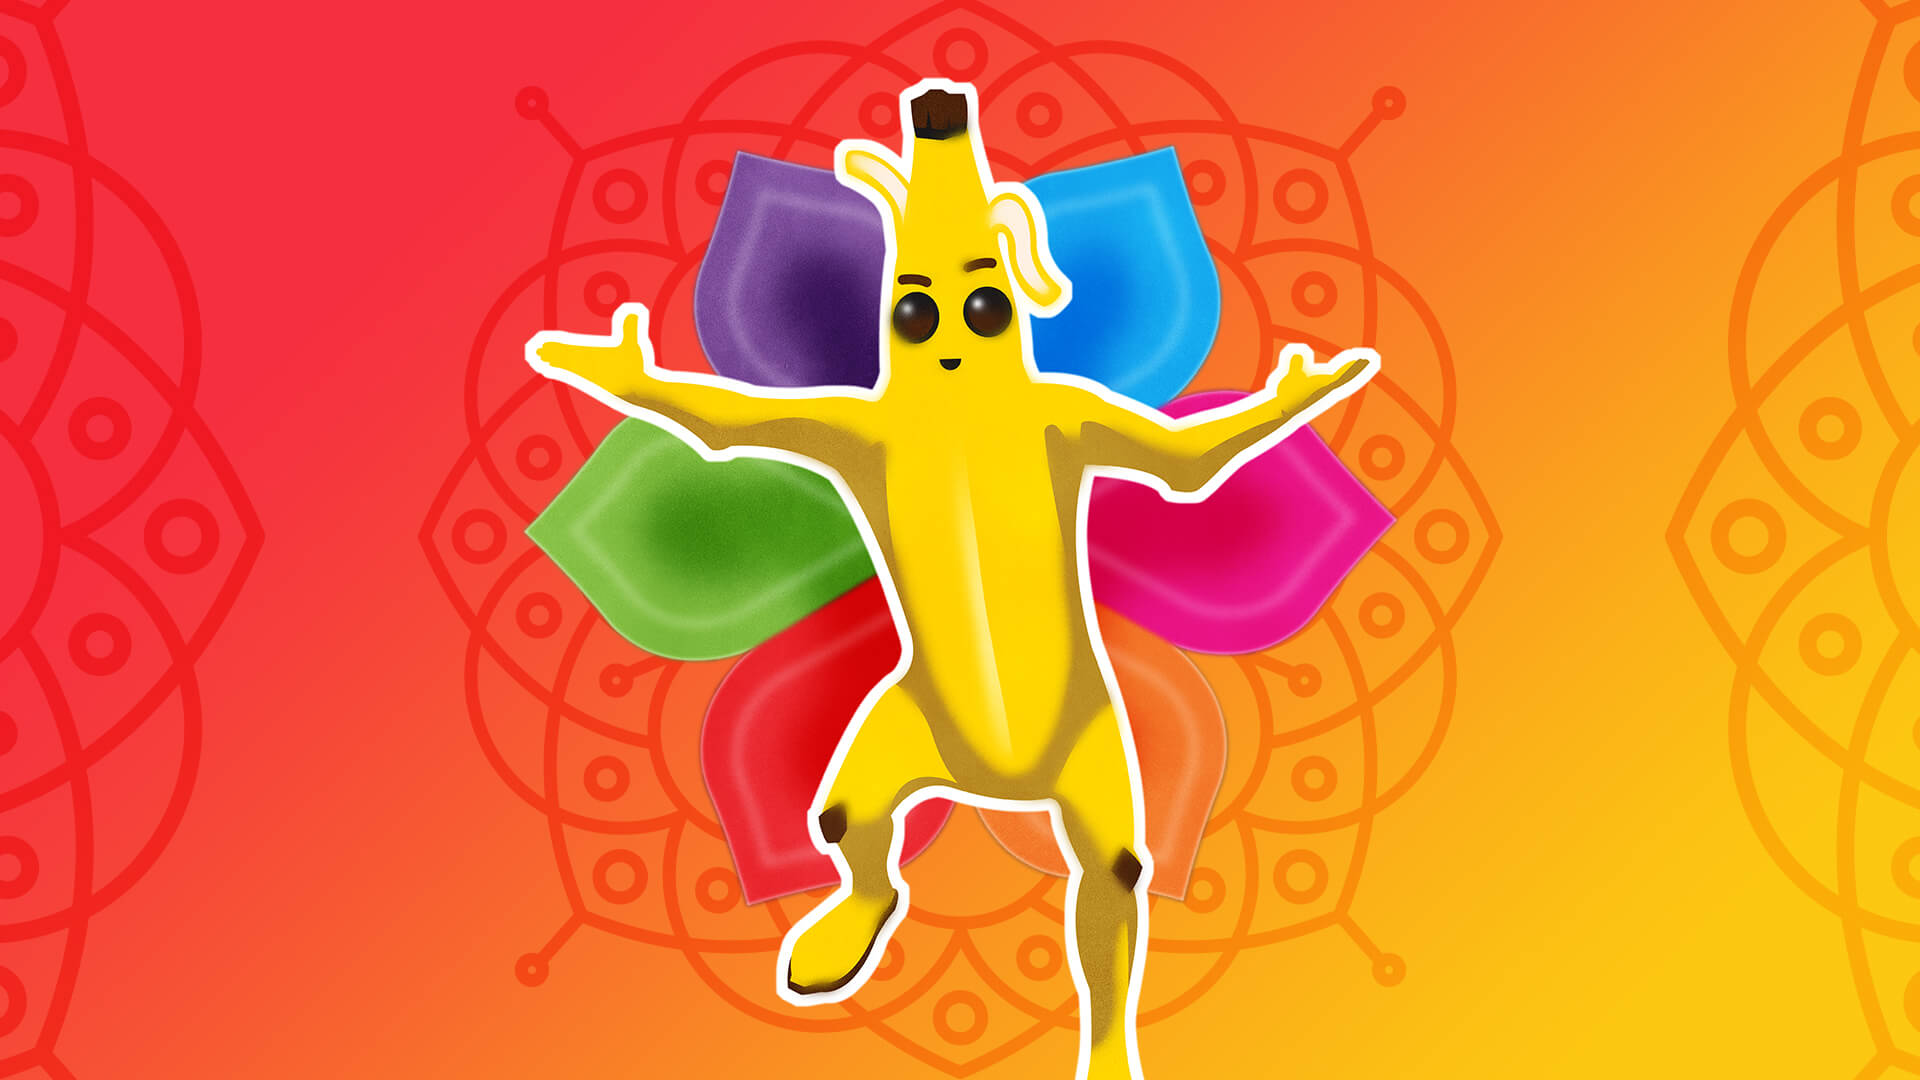 Fortnite Boogie Down Challenge Song Join The Fortnite Bhangra Boogie Cup Presented By Oneplus For Android Players